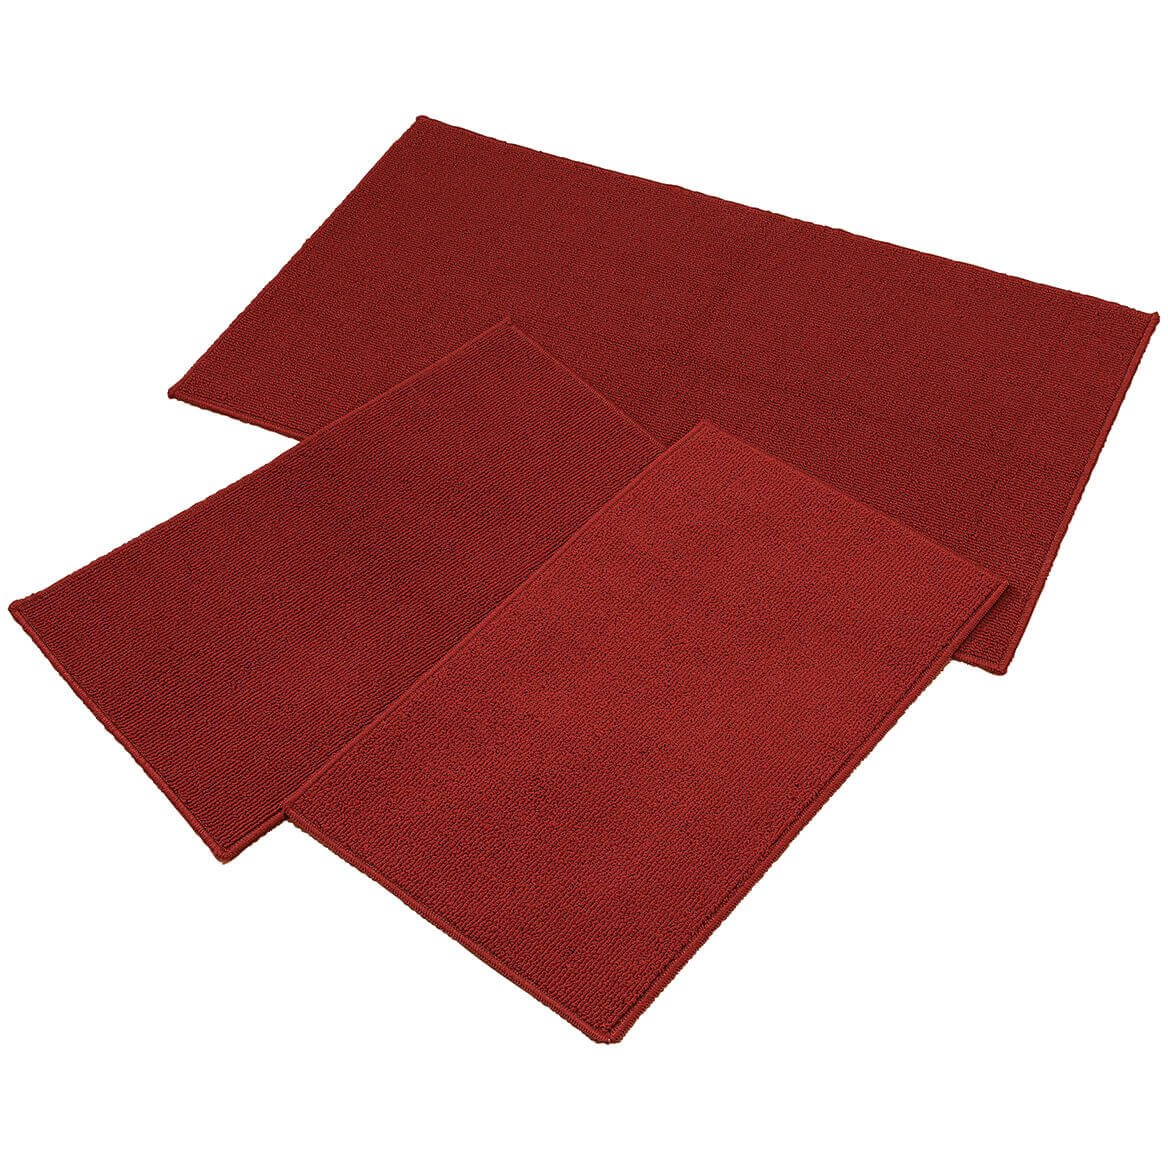 Rugby Solid Colored Rug by Oakridge®, Brick Set of 3-369097